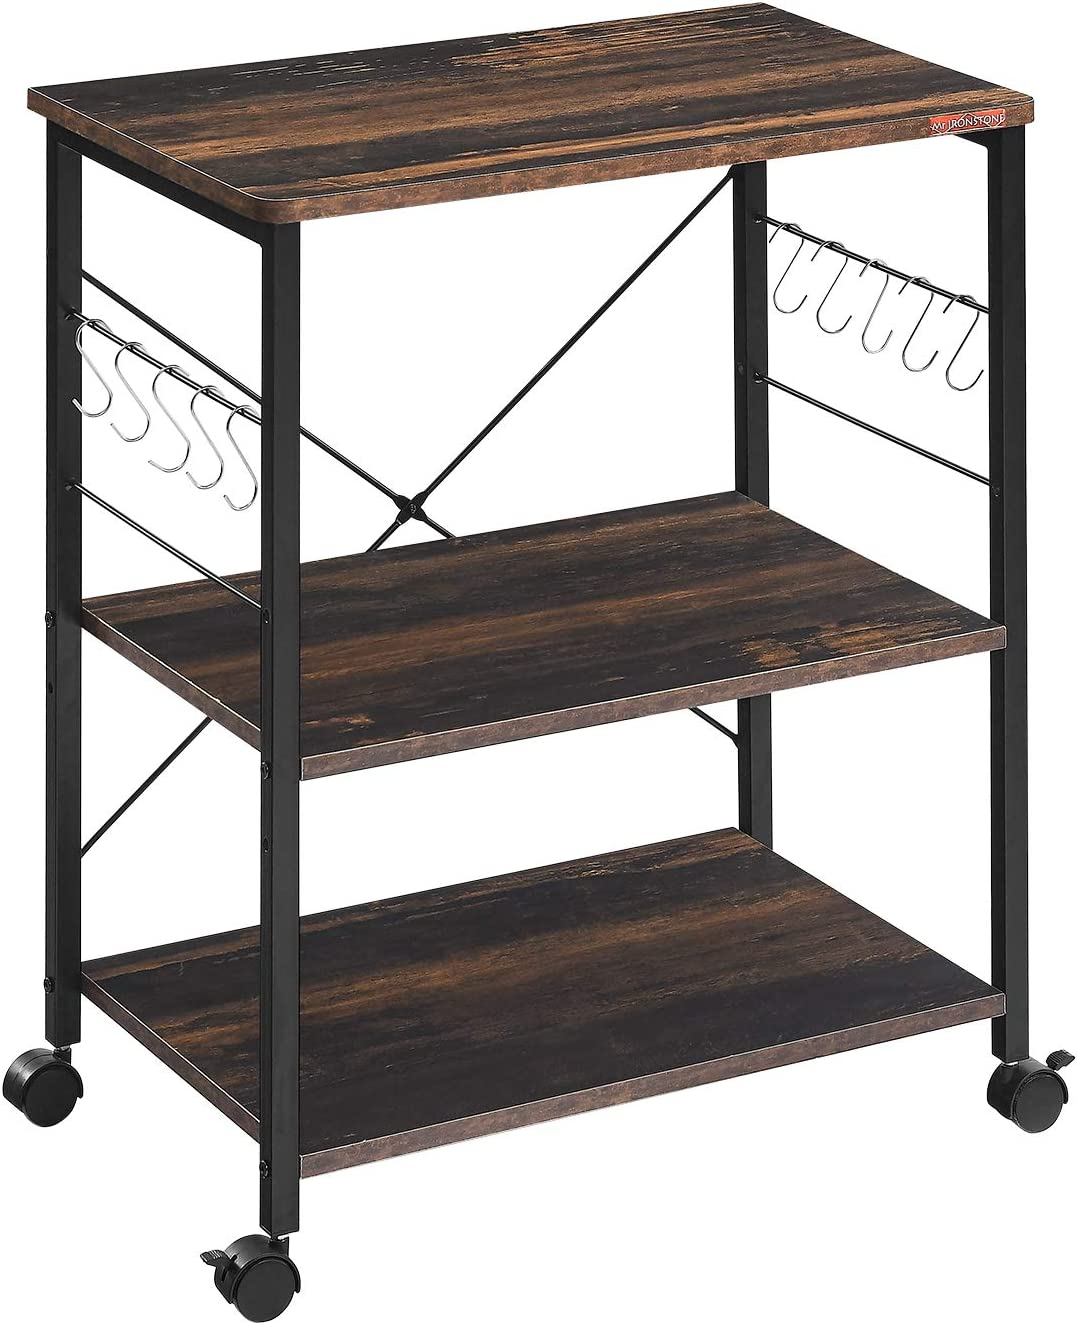 Mr IRONSTONE 3-Tier Kitchen Baker's Rack Utility Microwave Oven Stand Storage Cart Workstation Shelf (Charcoal Brown)